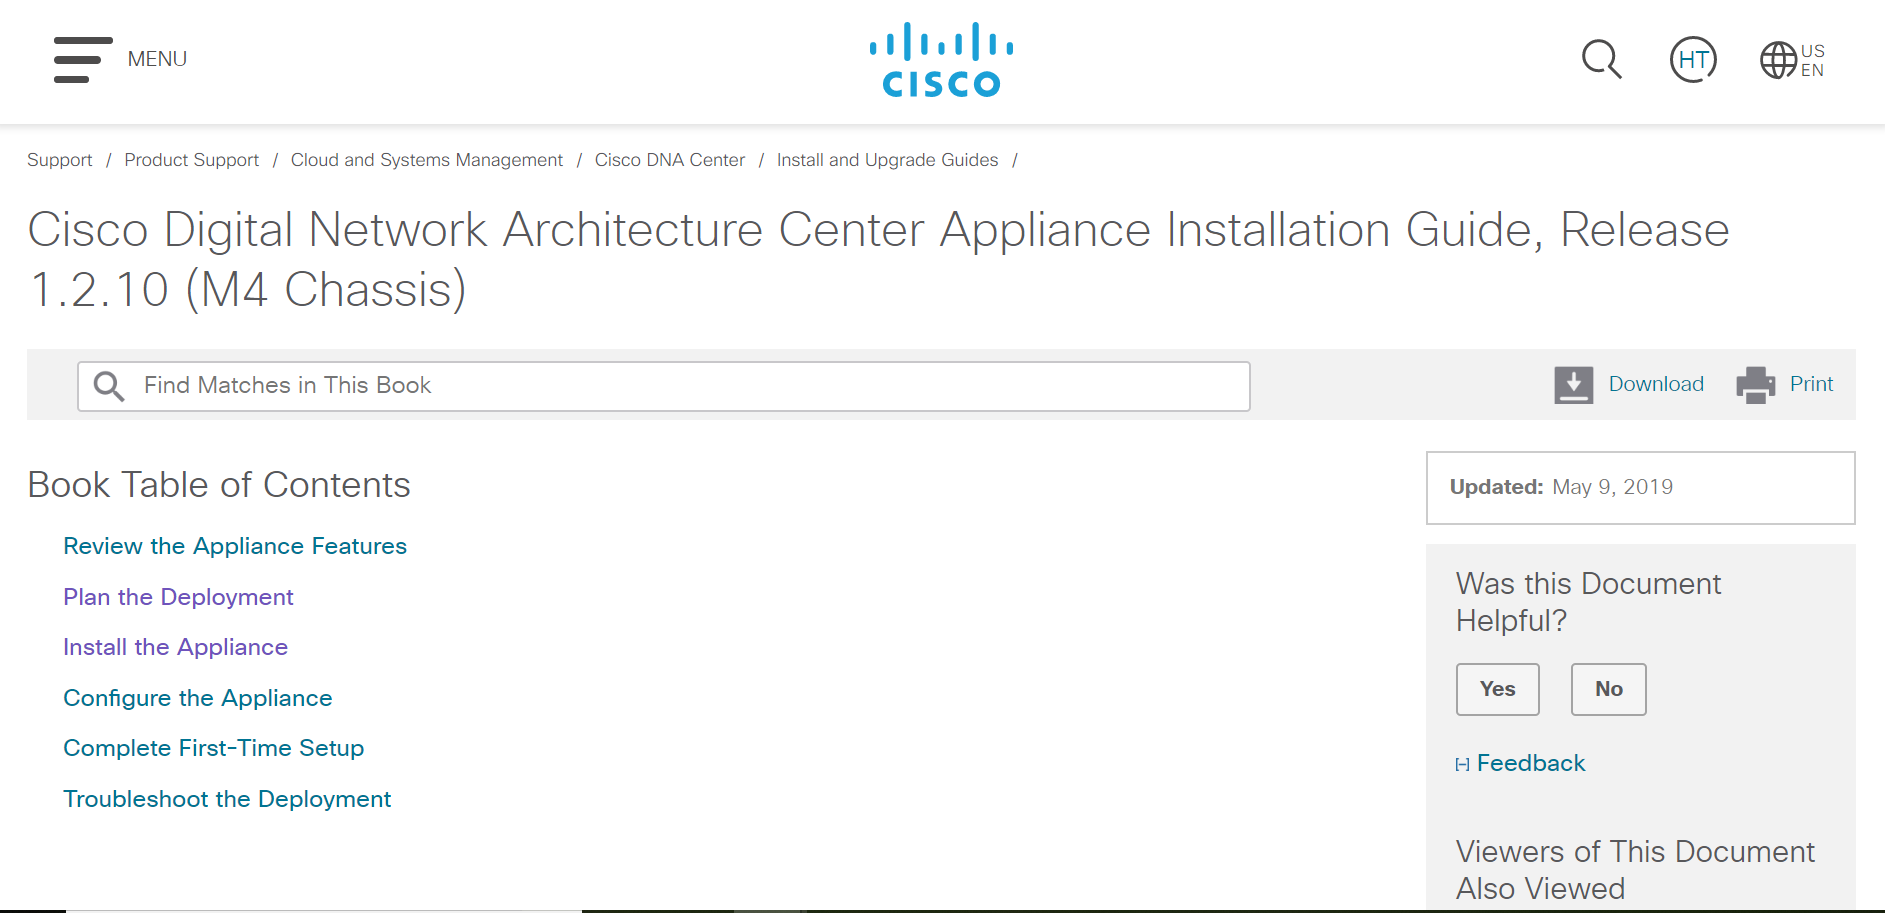 Guide] Cisco Digital Network Architecture Center Appliance